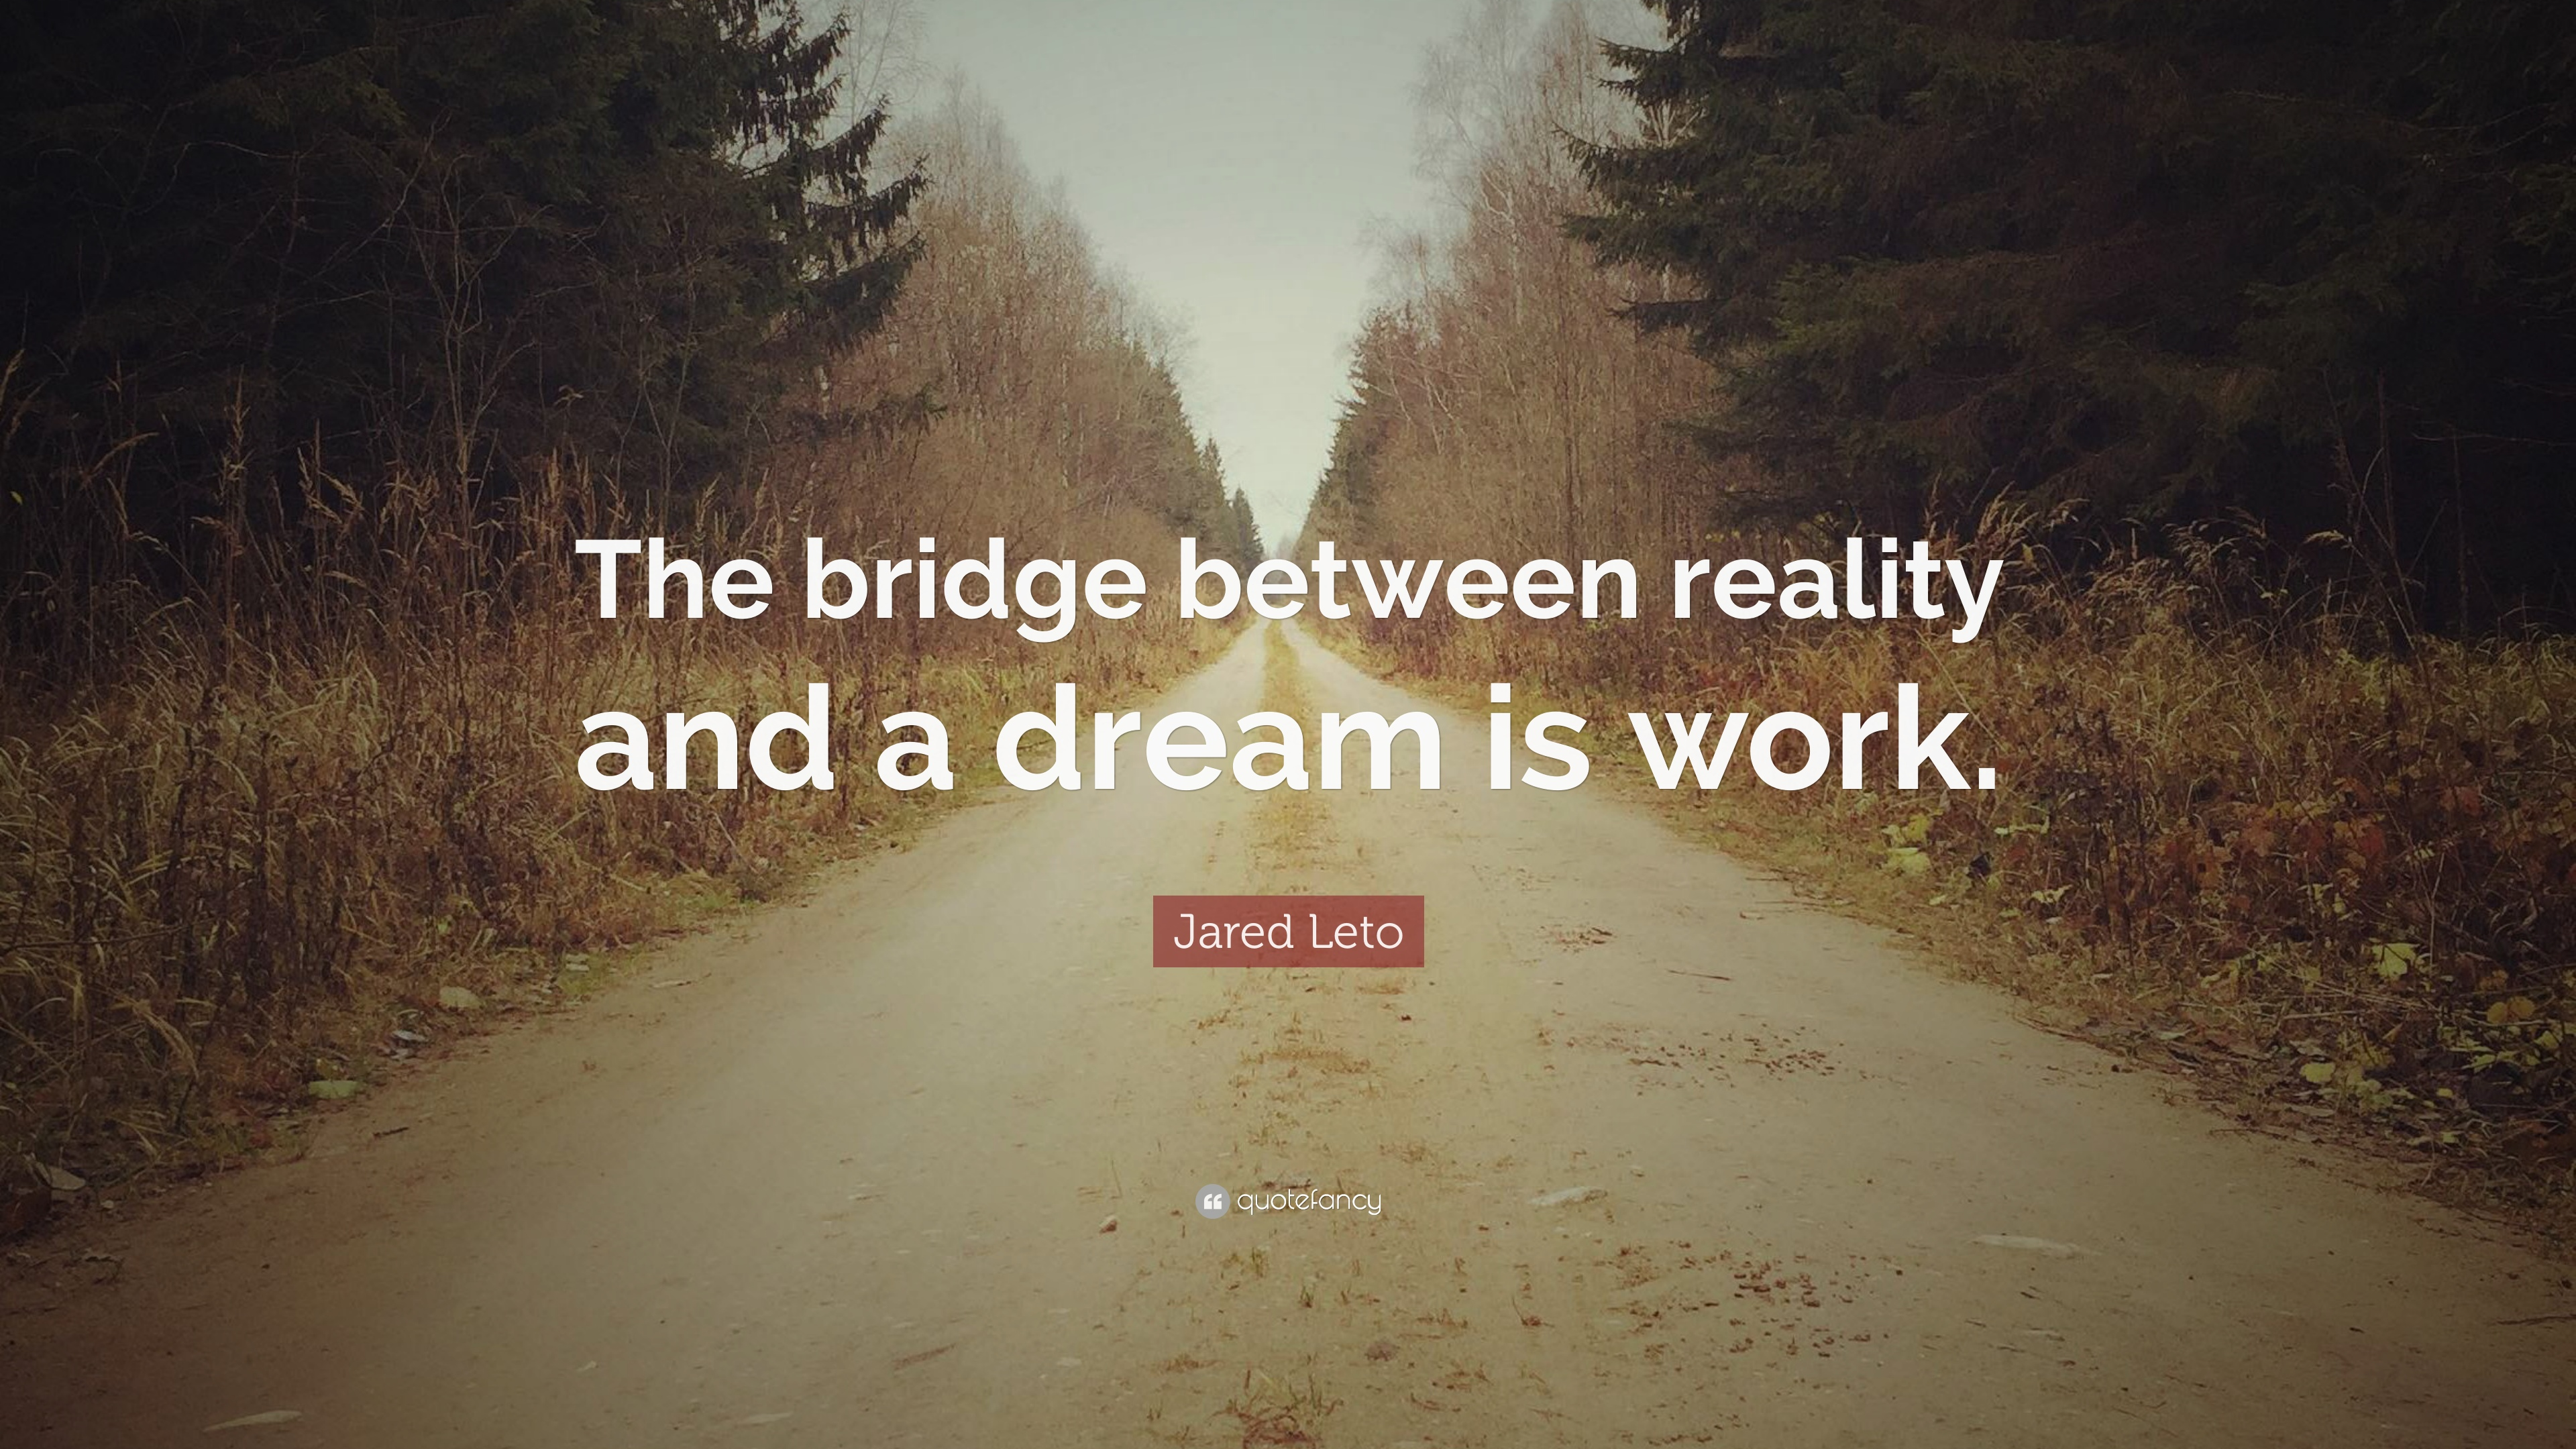 Quotes About Dreams The Bridge Between Reality And A Dream Is Work